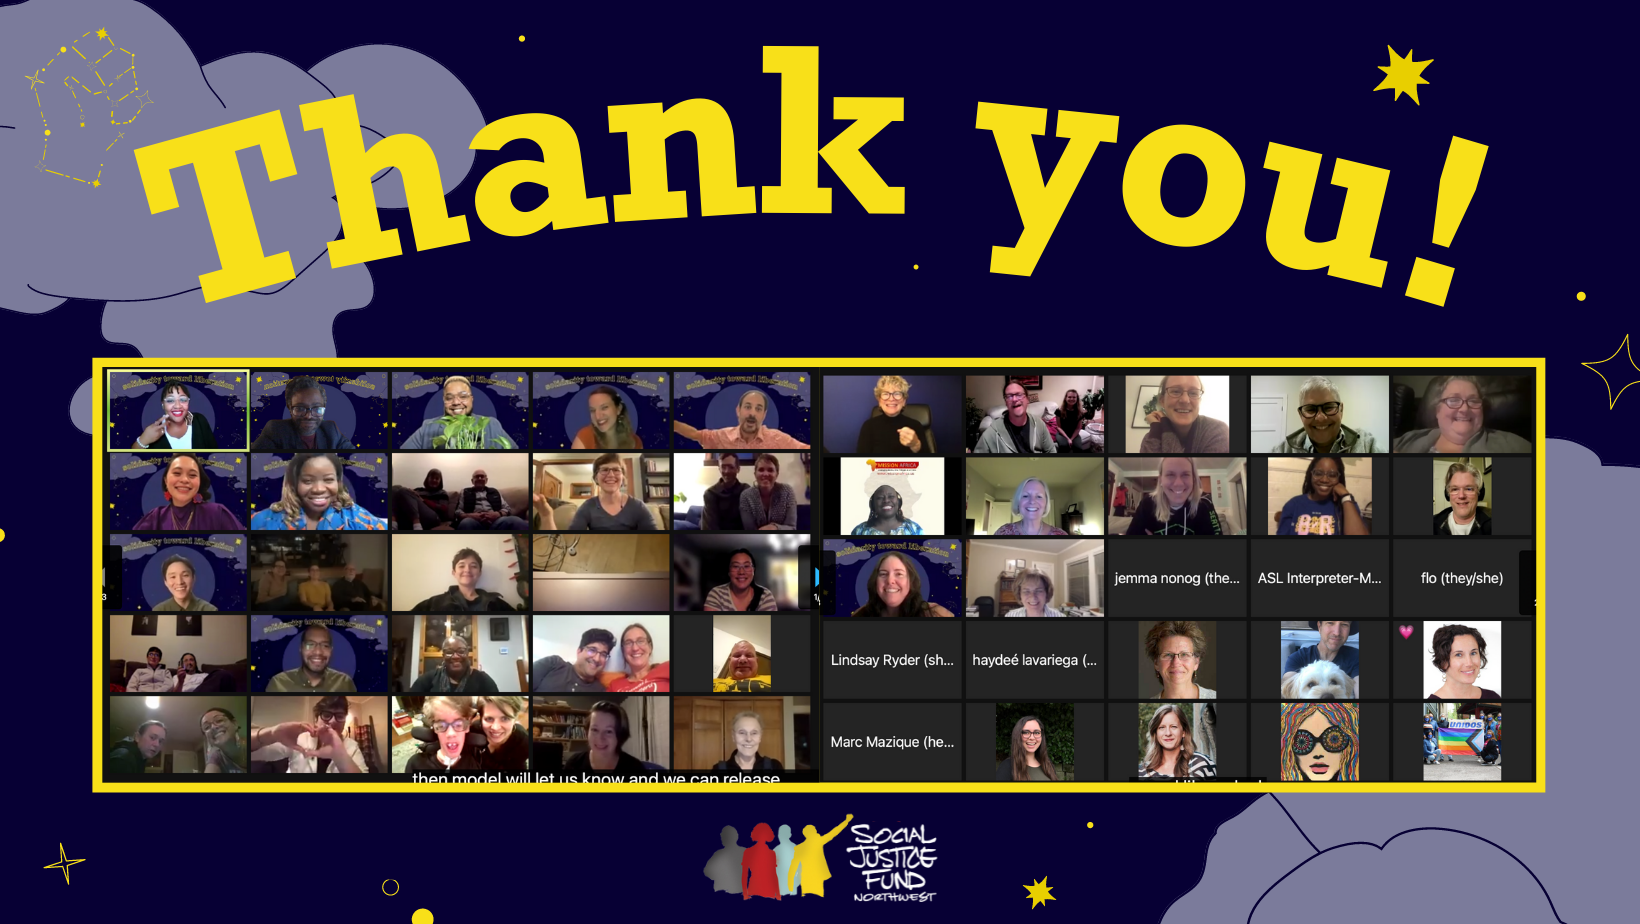 Rectangular banner with dark blue background depicting a night sky with stars and clouds. In the center are screenshots of a zoom event with many smiling people. Yellow text reads THANK YOU